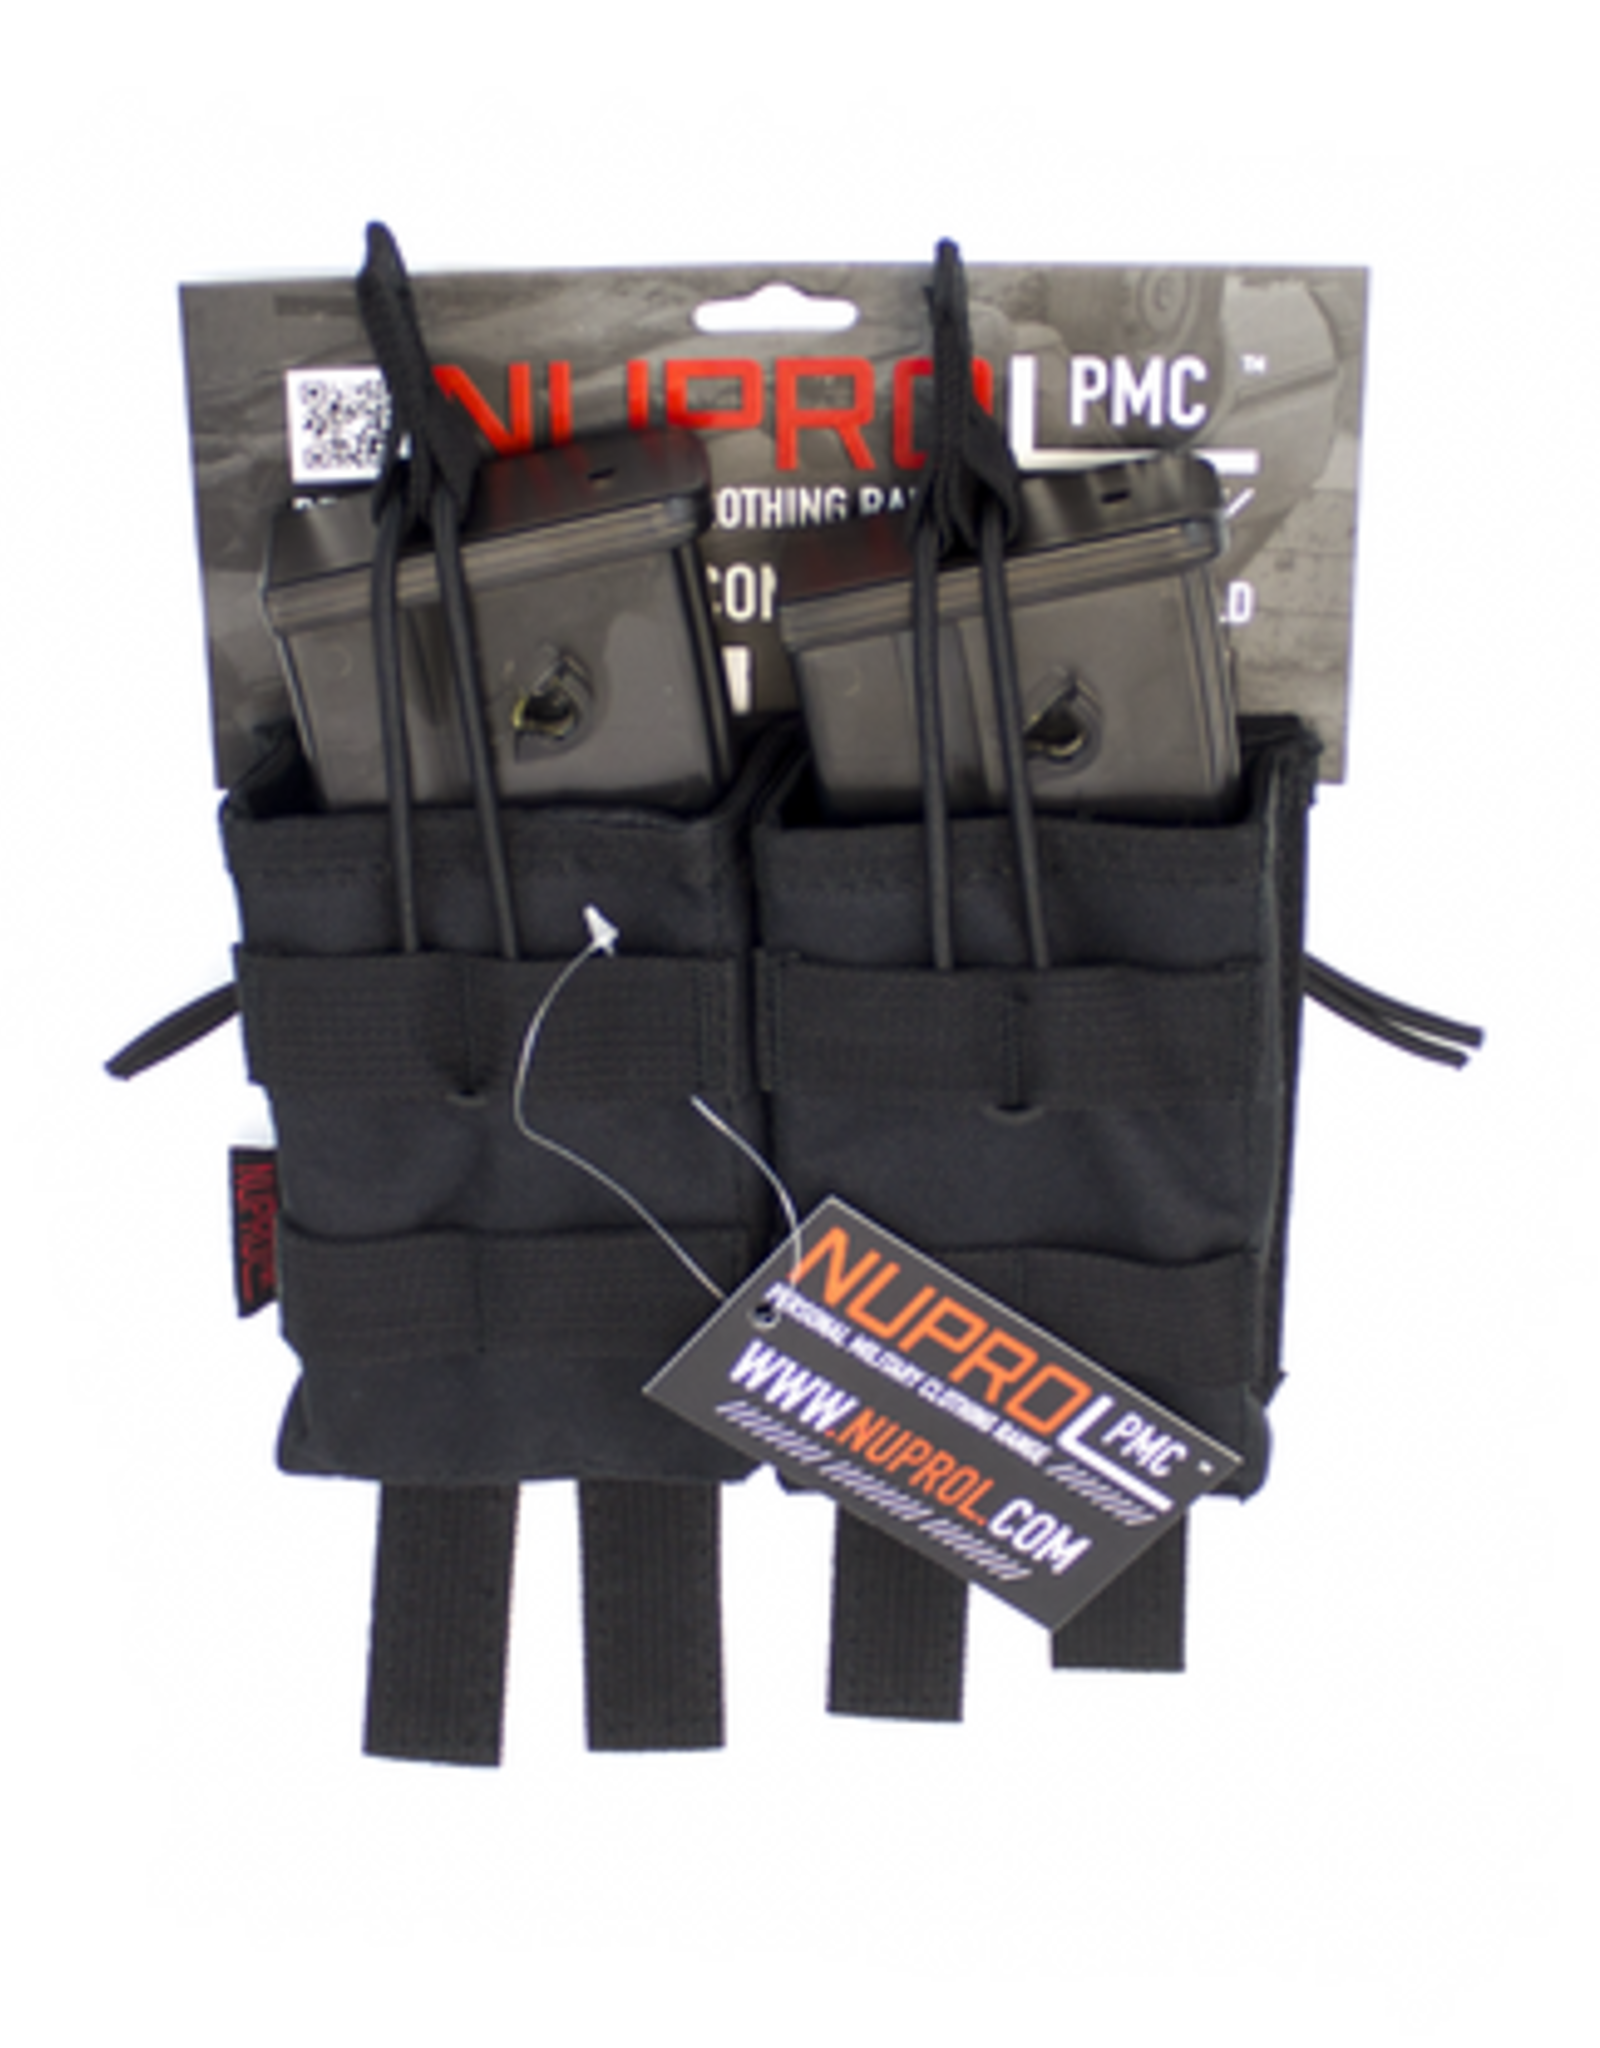 NUPROL NP PMC G36 DOUBLE OPEN MAG POUCH - BLACK